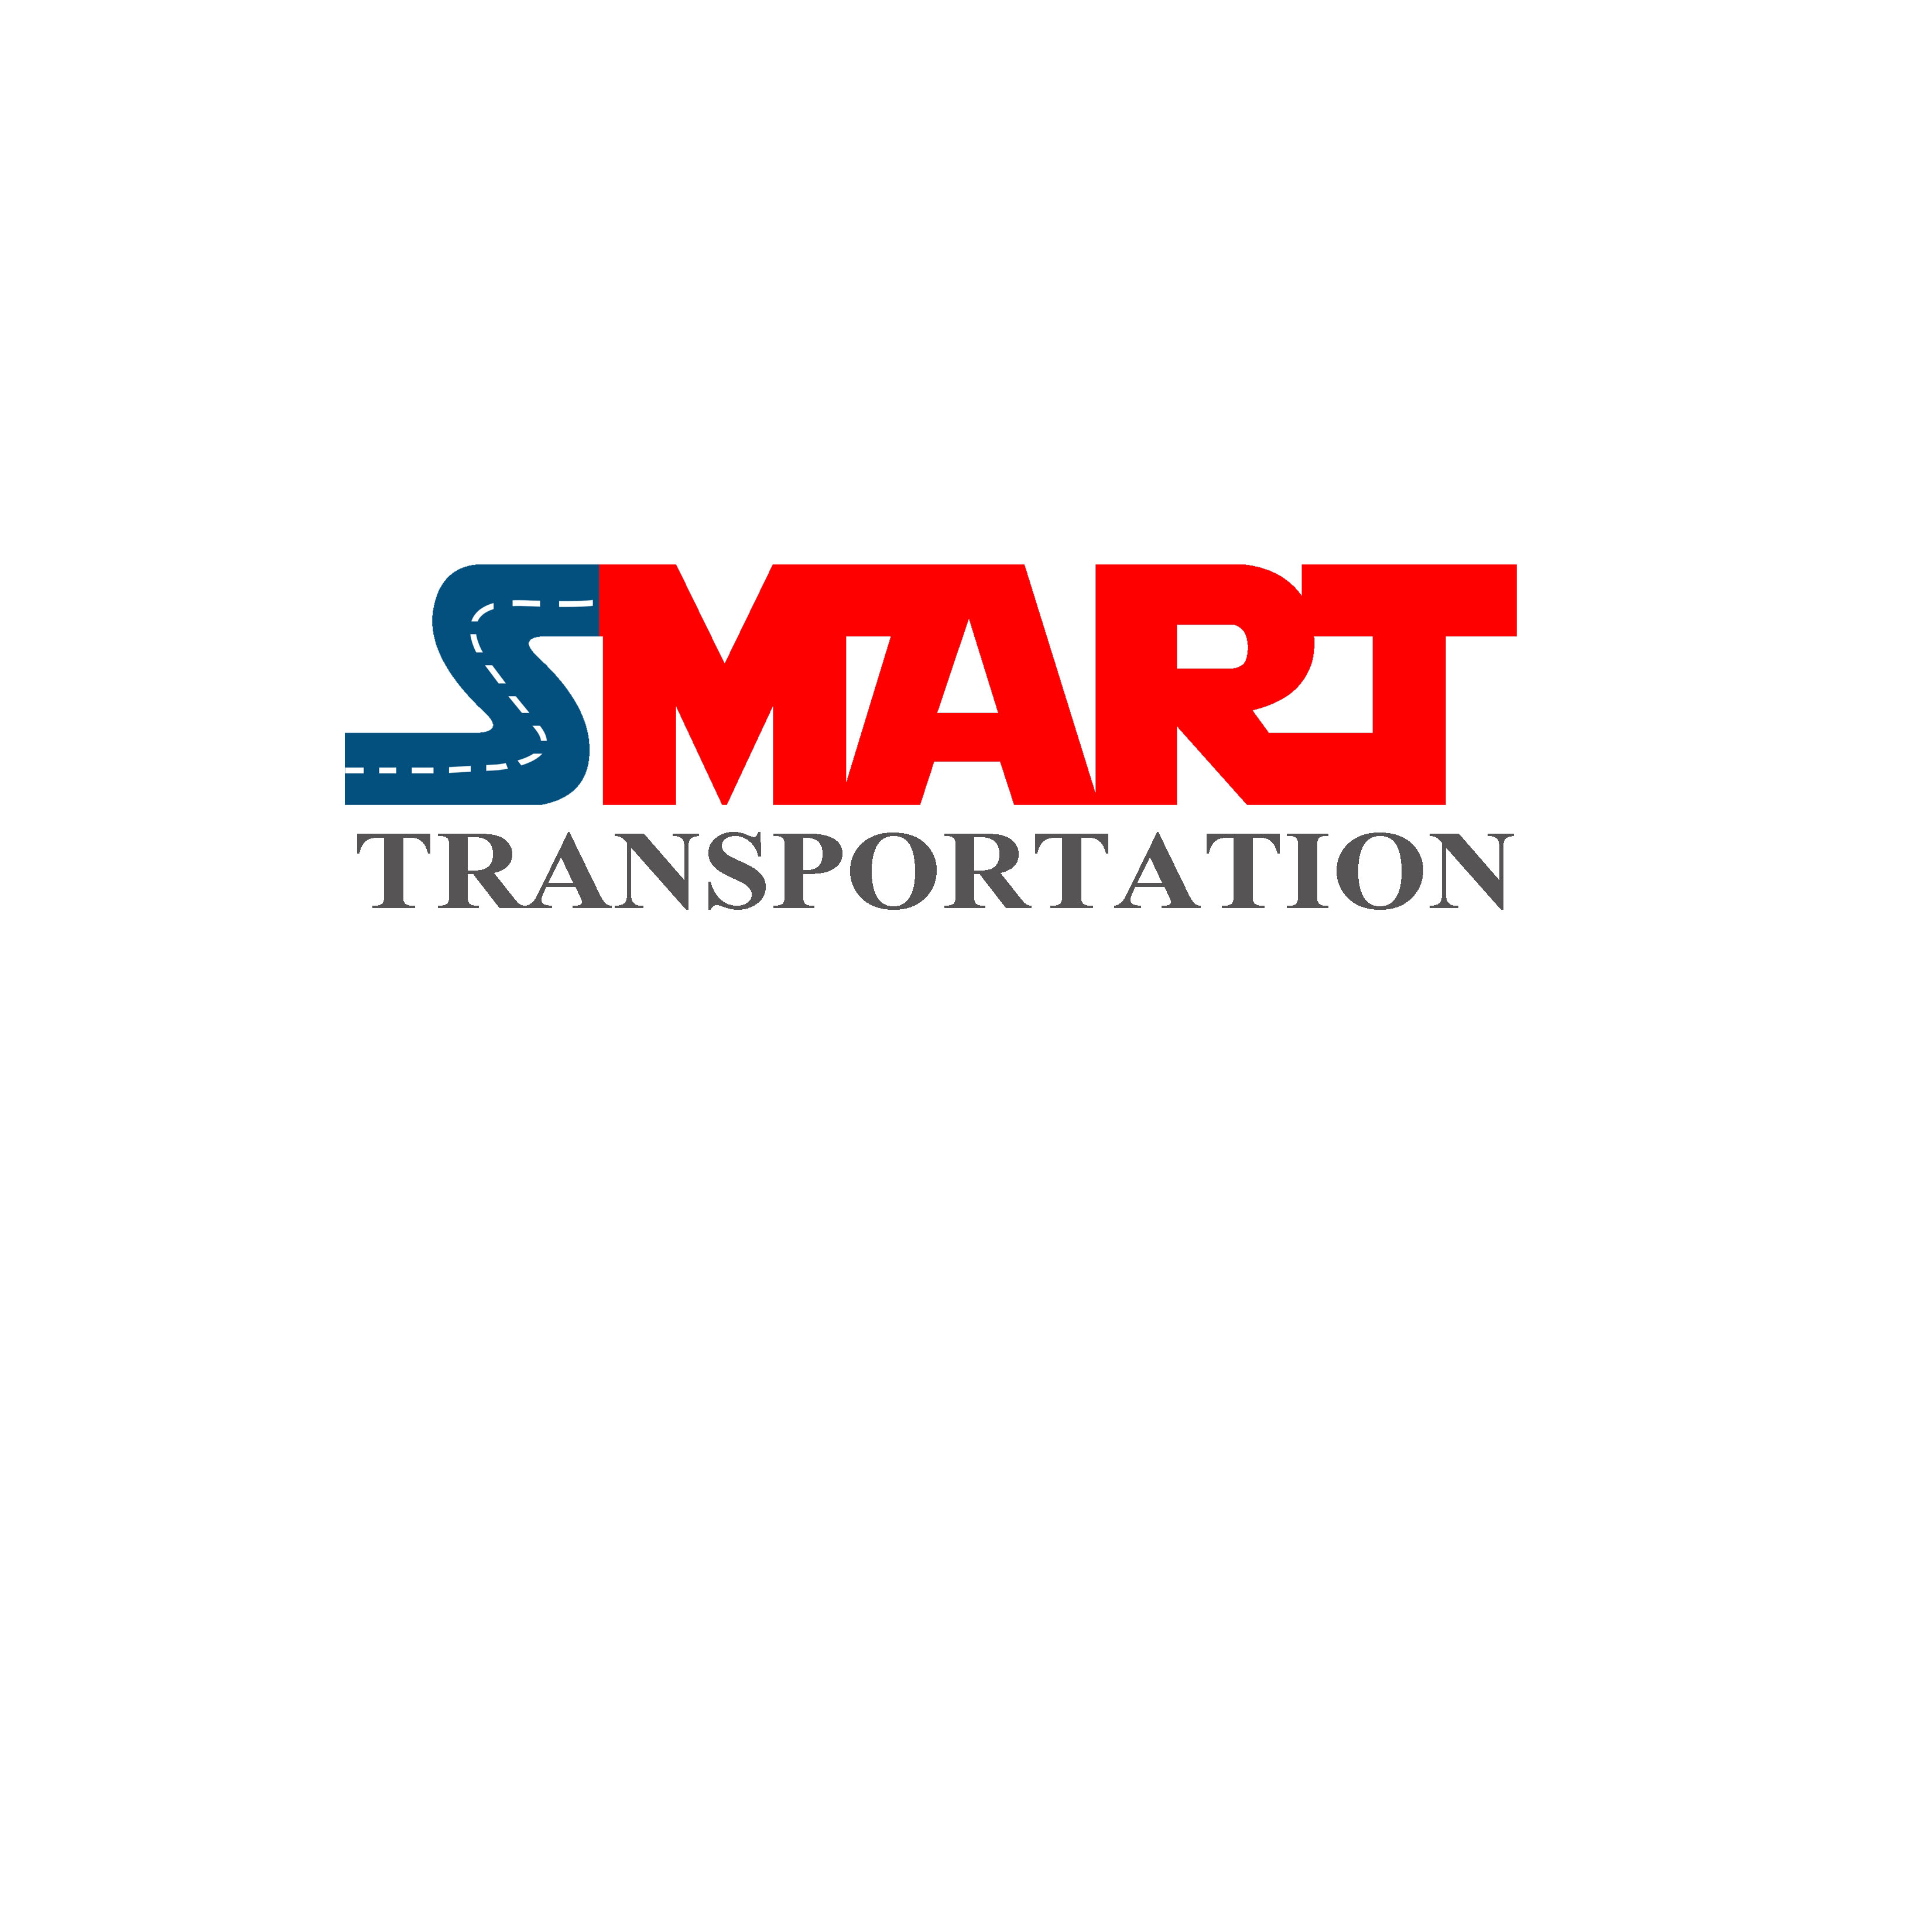 Logo Design by Allan Esclamado - Entry No. 104 in the Logo Design Contest Imaginative Logo Design for Smart Transportation.